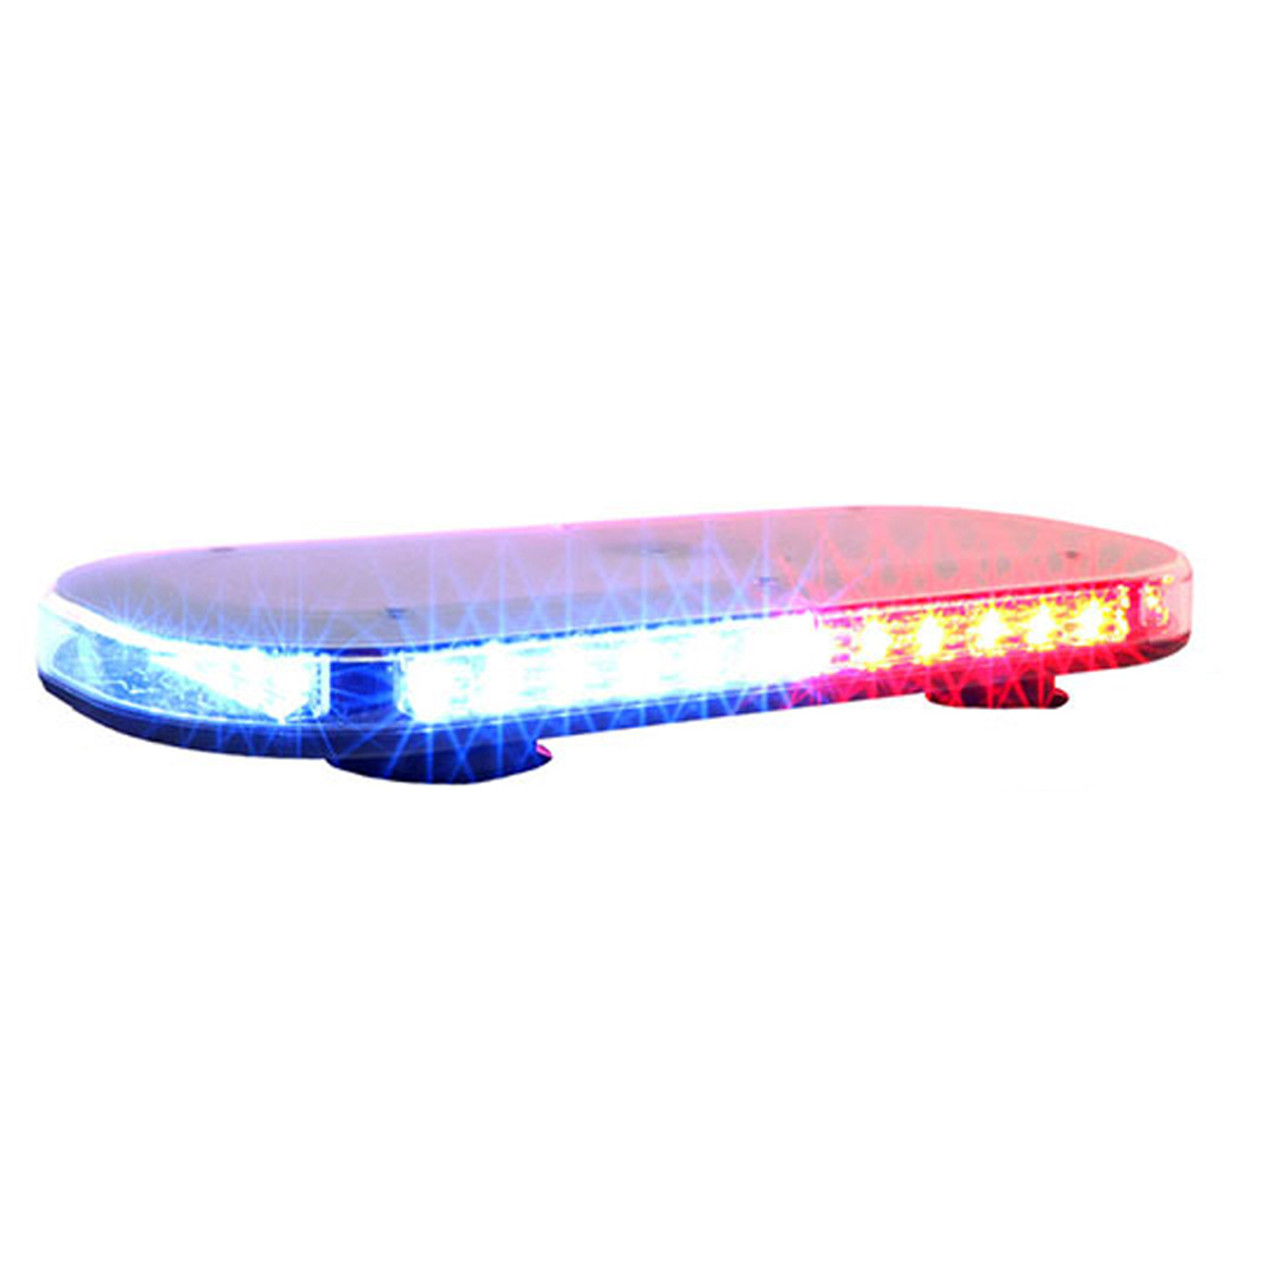 Brooking MB-EXD Dual Color Mini LED Extended Light Bar 72-Diode Micro-Bar, 16x7x1, Choose Magnetic or Permanent Mount